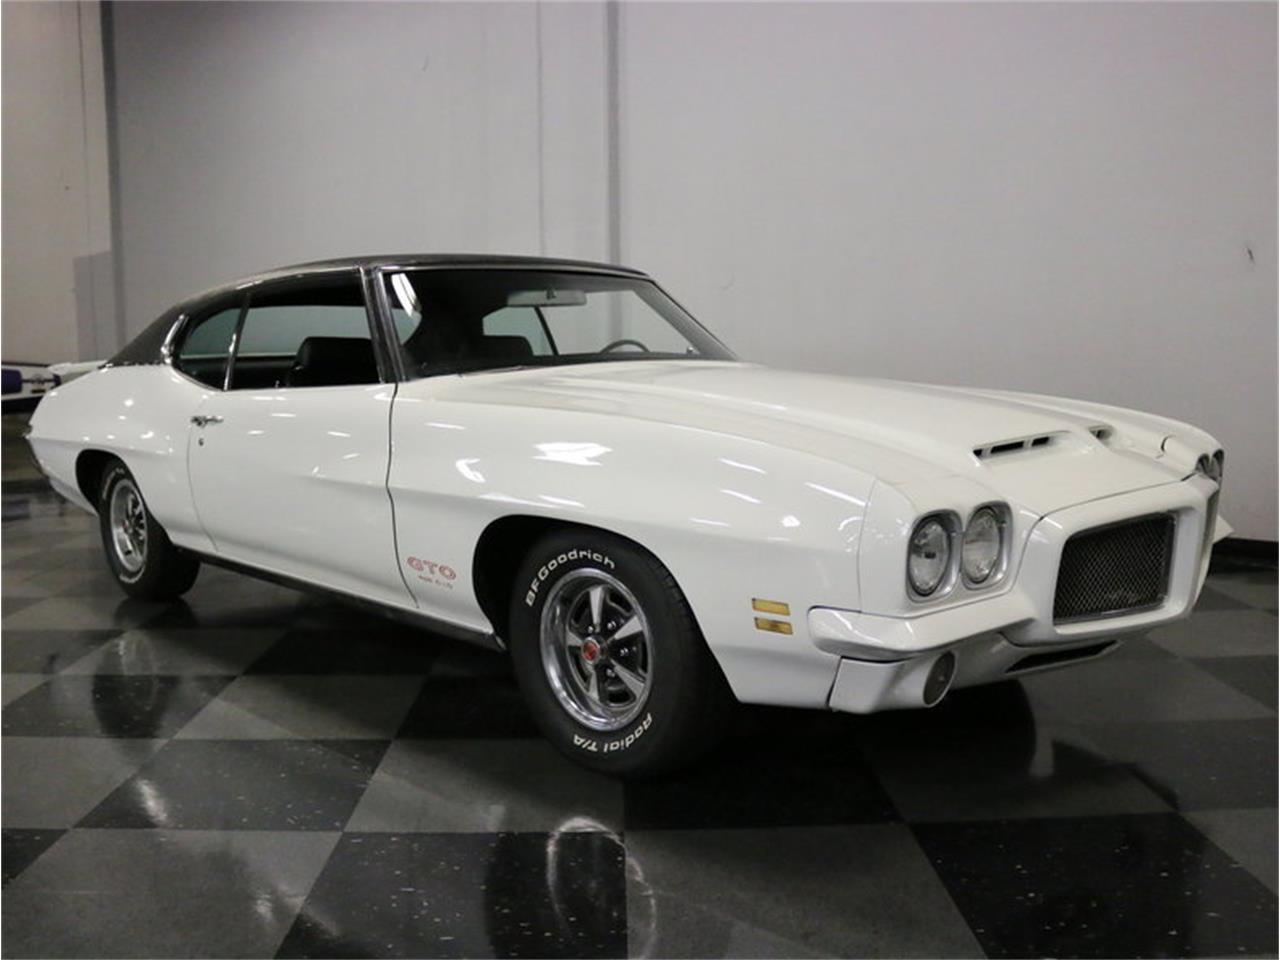 Large Picture of Classic '71 Pontiac GTO - $39,995.00 Offered by Streetside Classics - Dallas / Fort Worth - MOBK